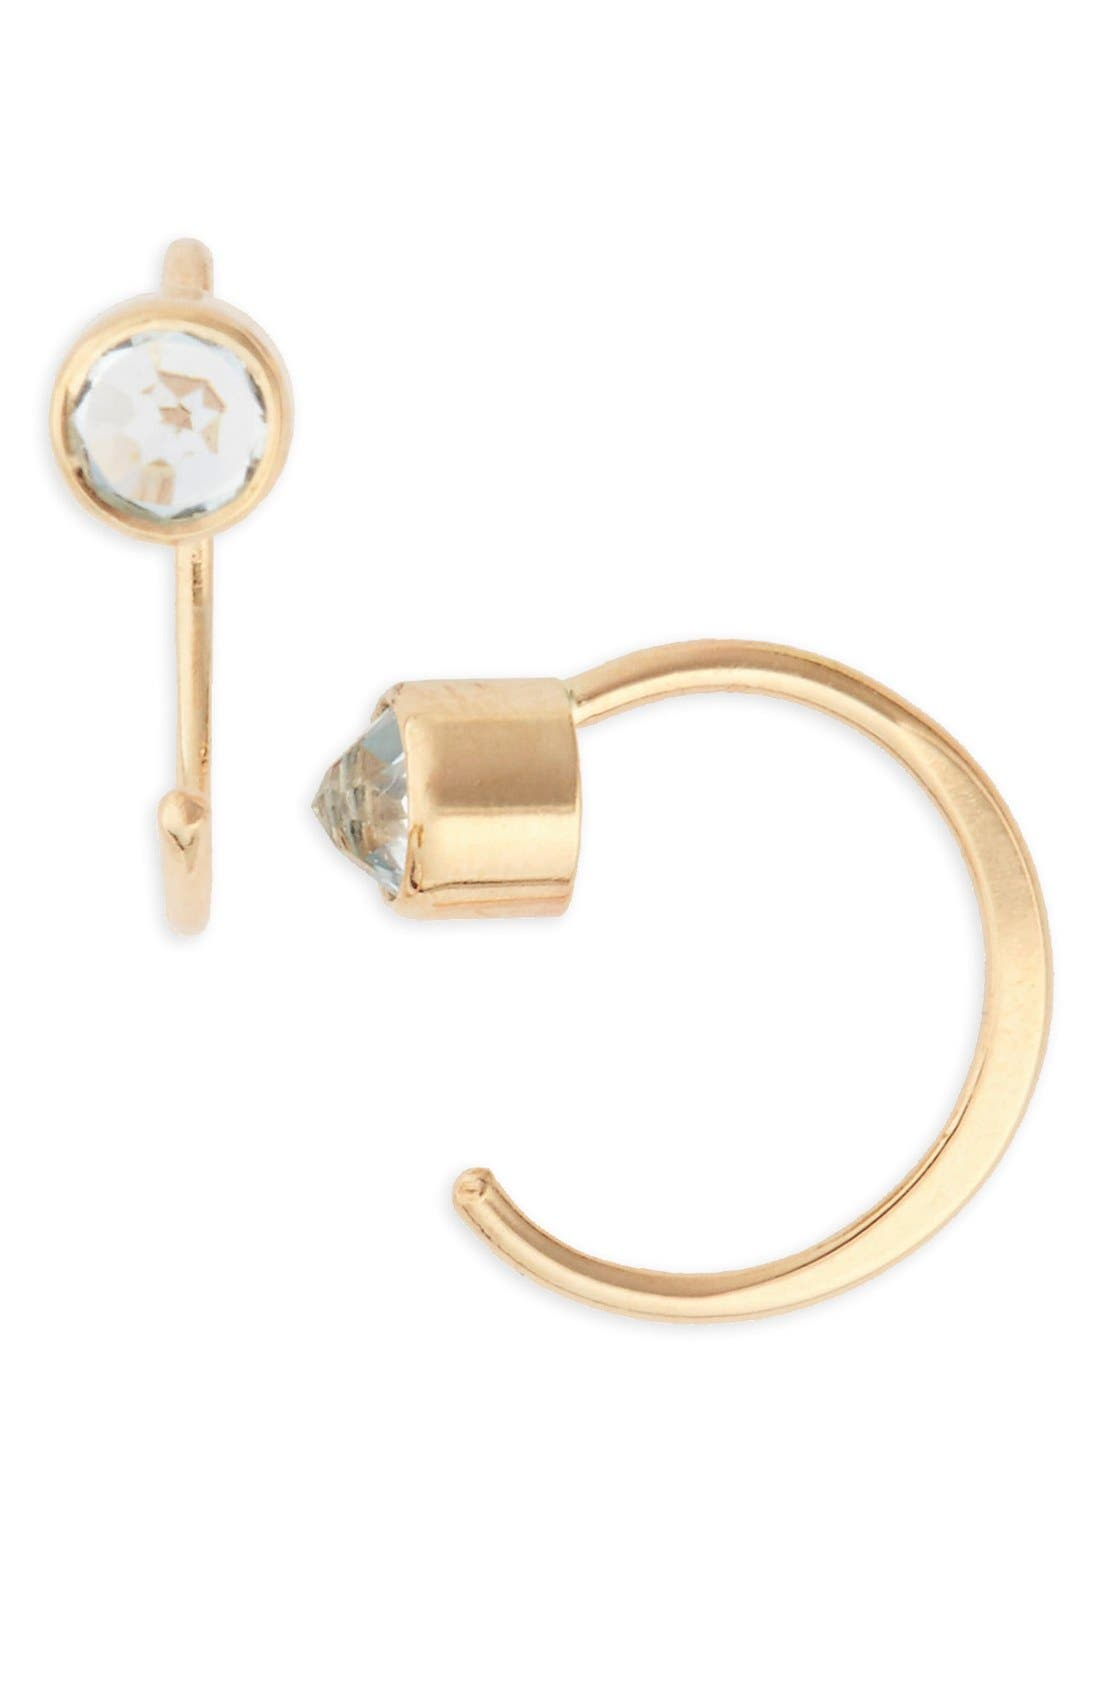 Main Image - Melissa Joy Manning Topaz Hug Hoop Earrings